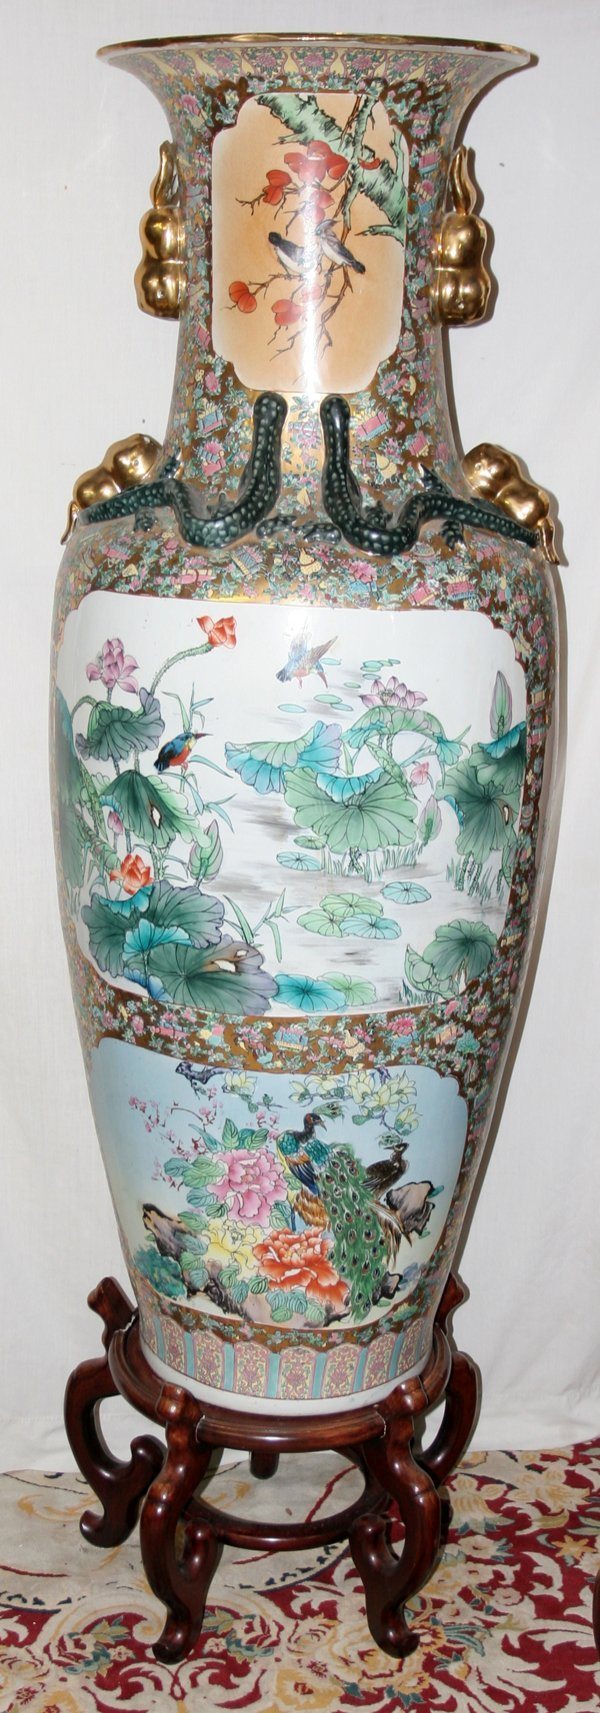 """030012: CHINESE PORCELAIN PALACE URN, H 61"""", STAND"""